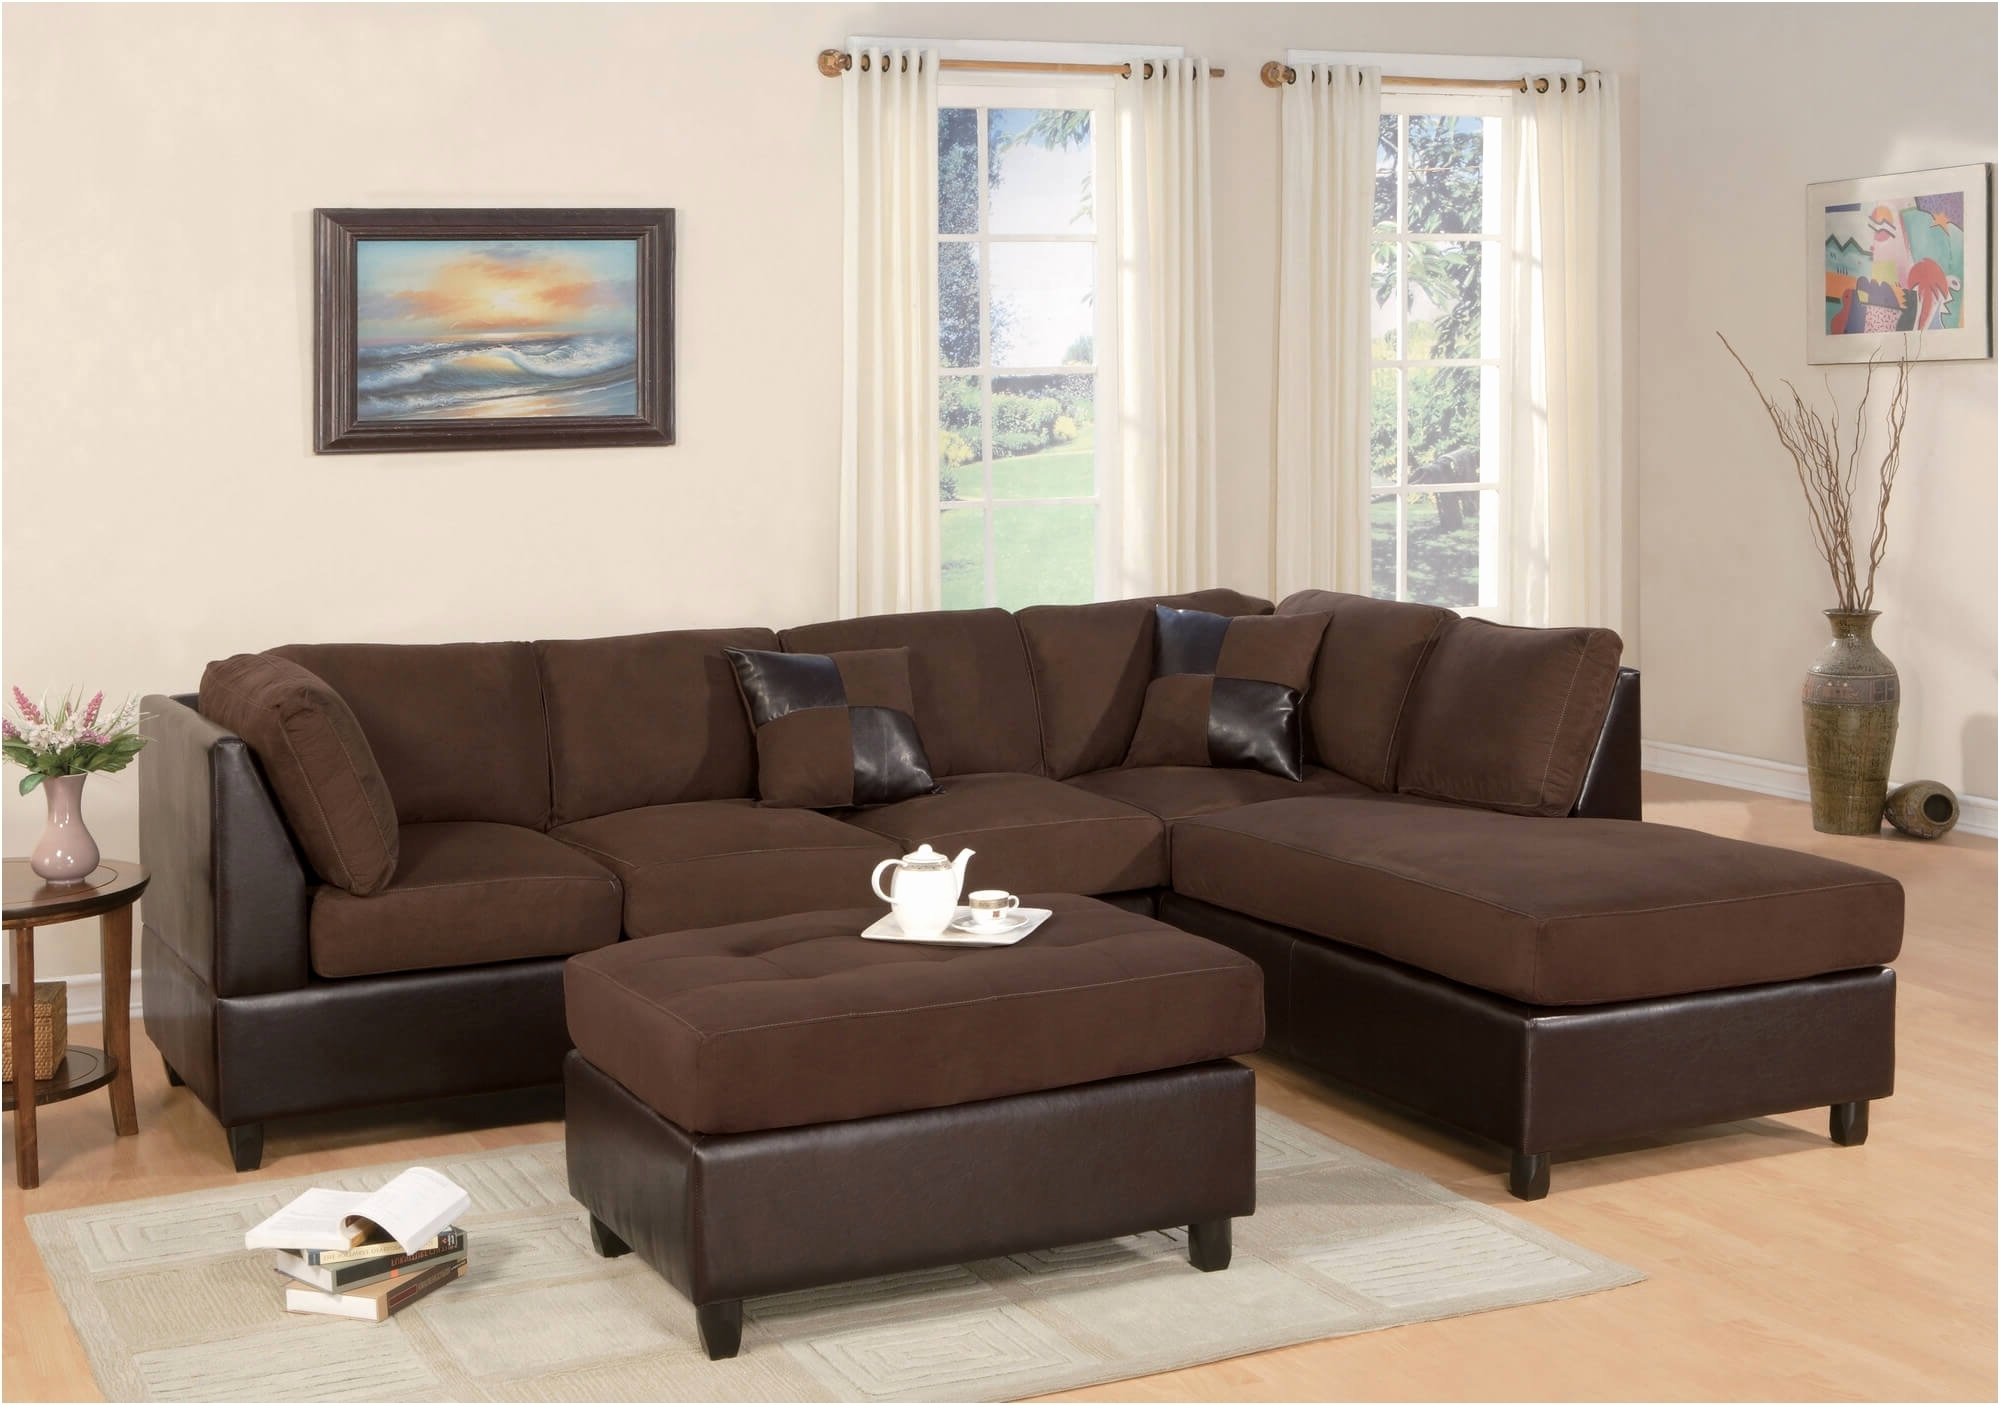 Lovely Sofa Sectionals On Sale Fresh - Sofa Furnitures | Sofa Furnitures throughout Kingston Ontario Sectional Sofas (Image 5 of 10)